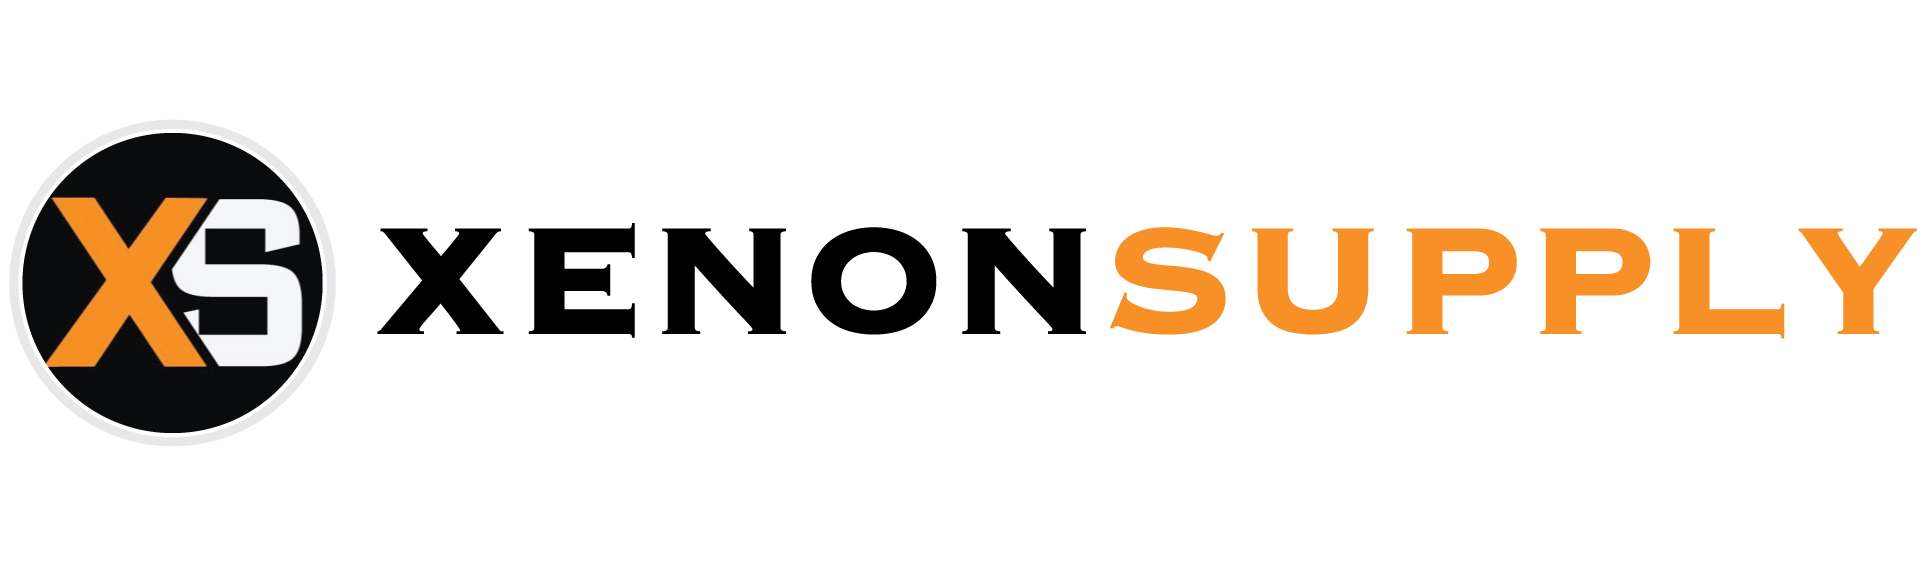 XenonSupply - XS Corporation